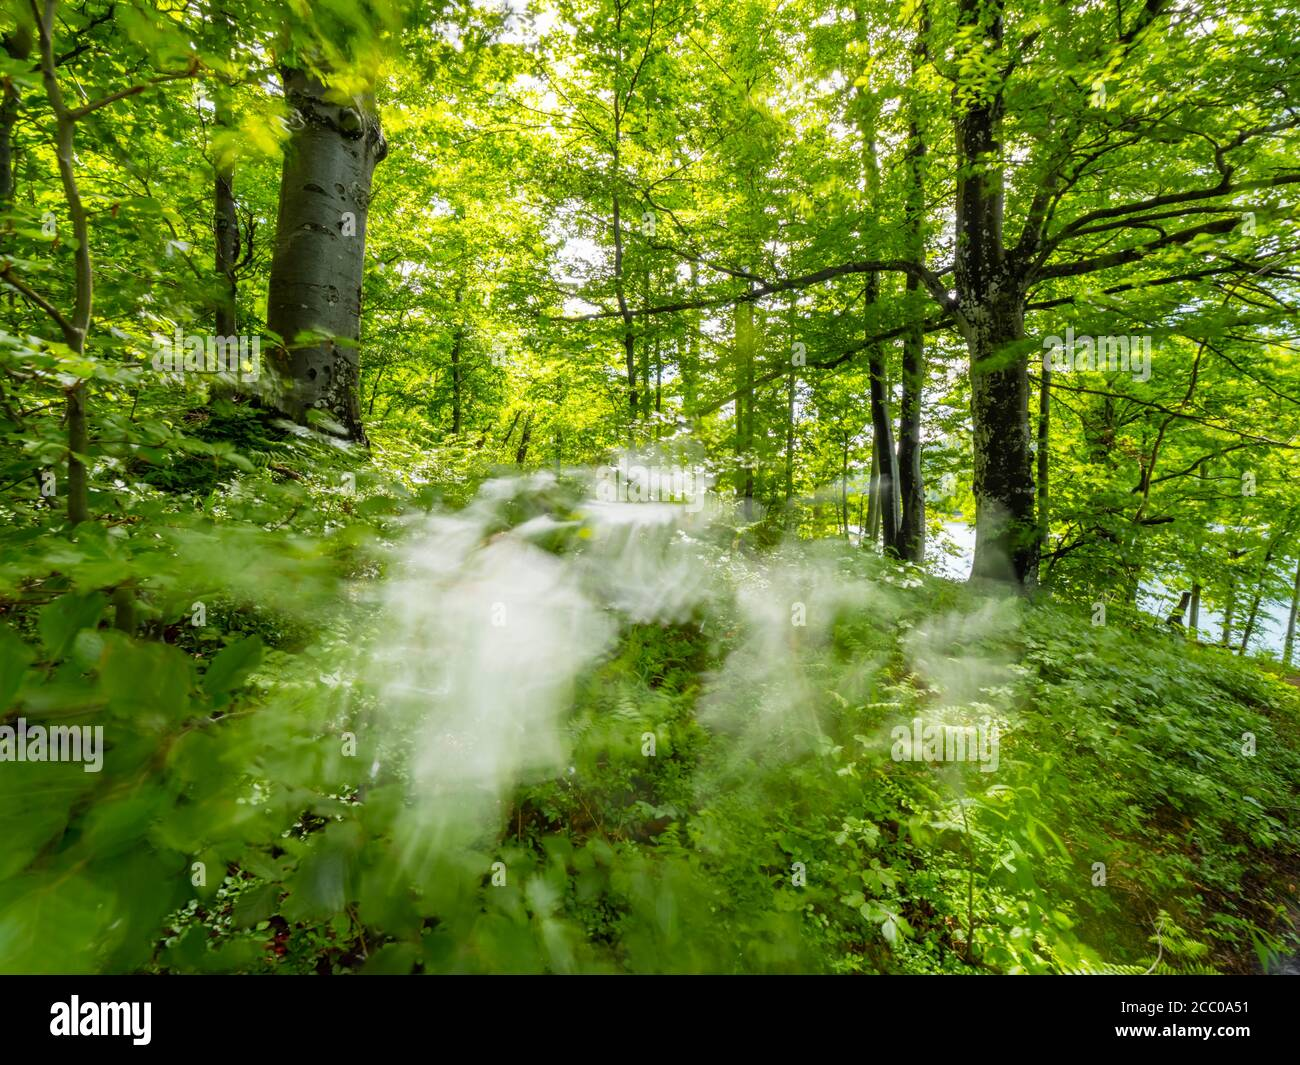 Green forest blurry blur patch of light sunlight through dense Green vegetation trees woodland in country-side countryside without people wop nobody Stock Photo